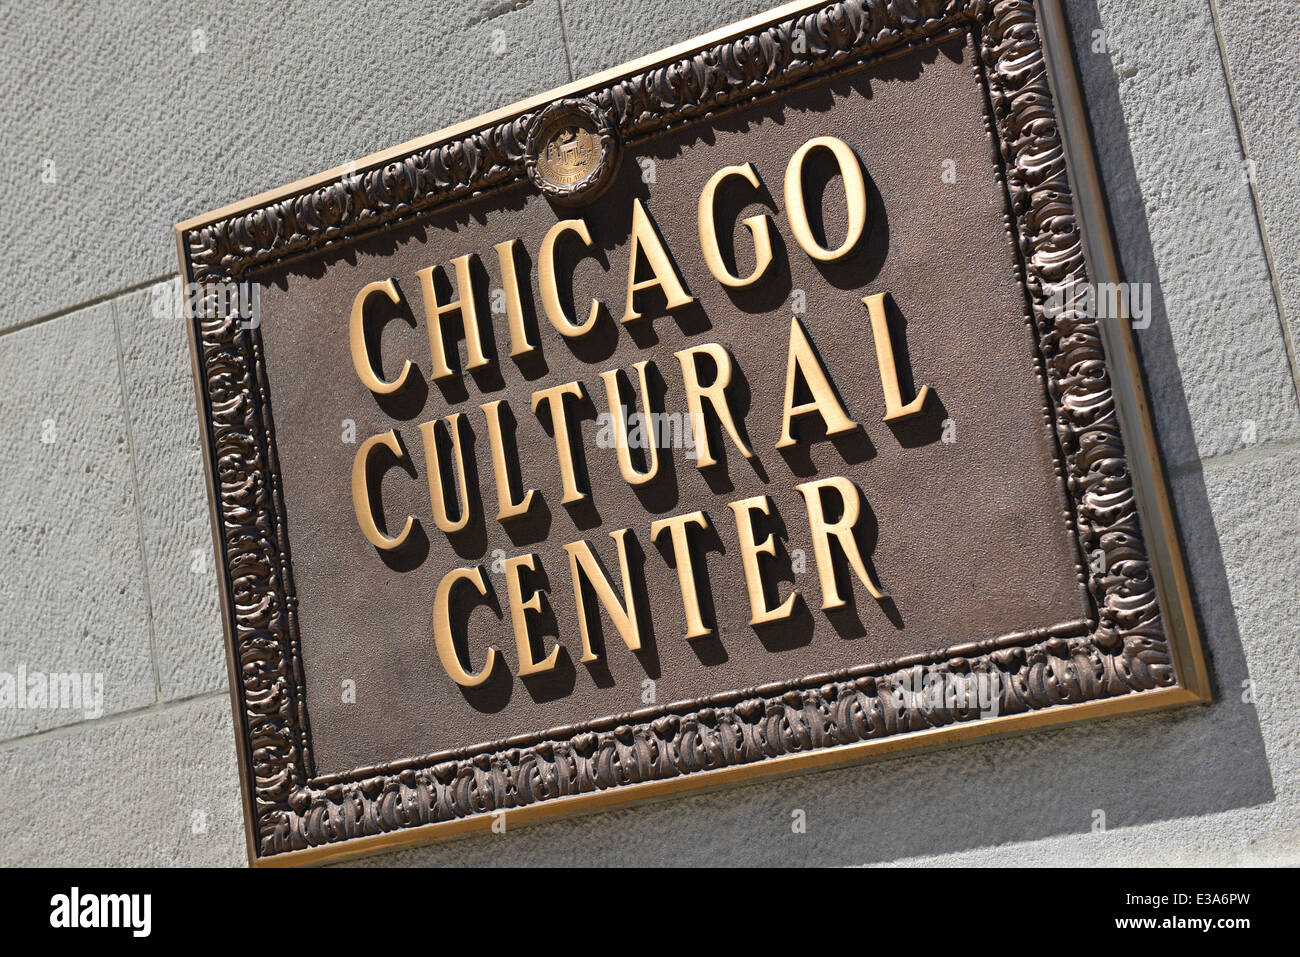 Sign outside, on Chicago Cultural Center building wall, Chicago, Illinois, USA - Stock Image